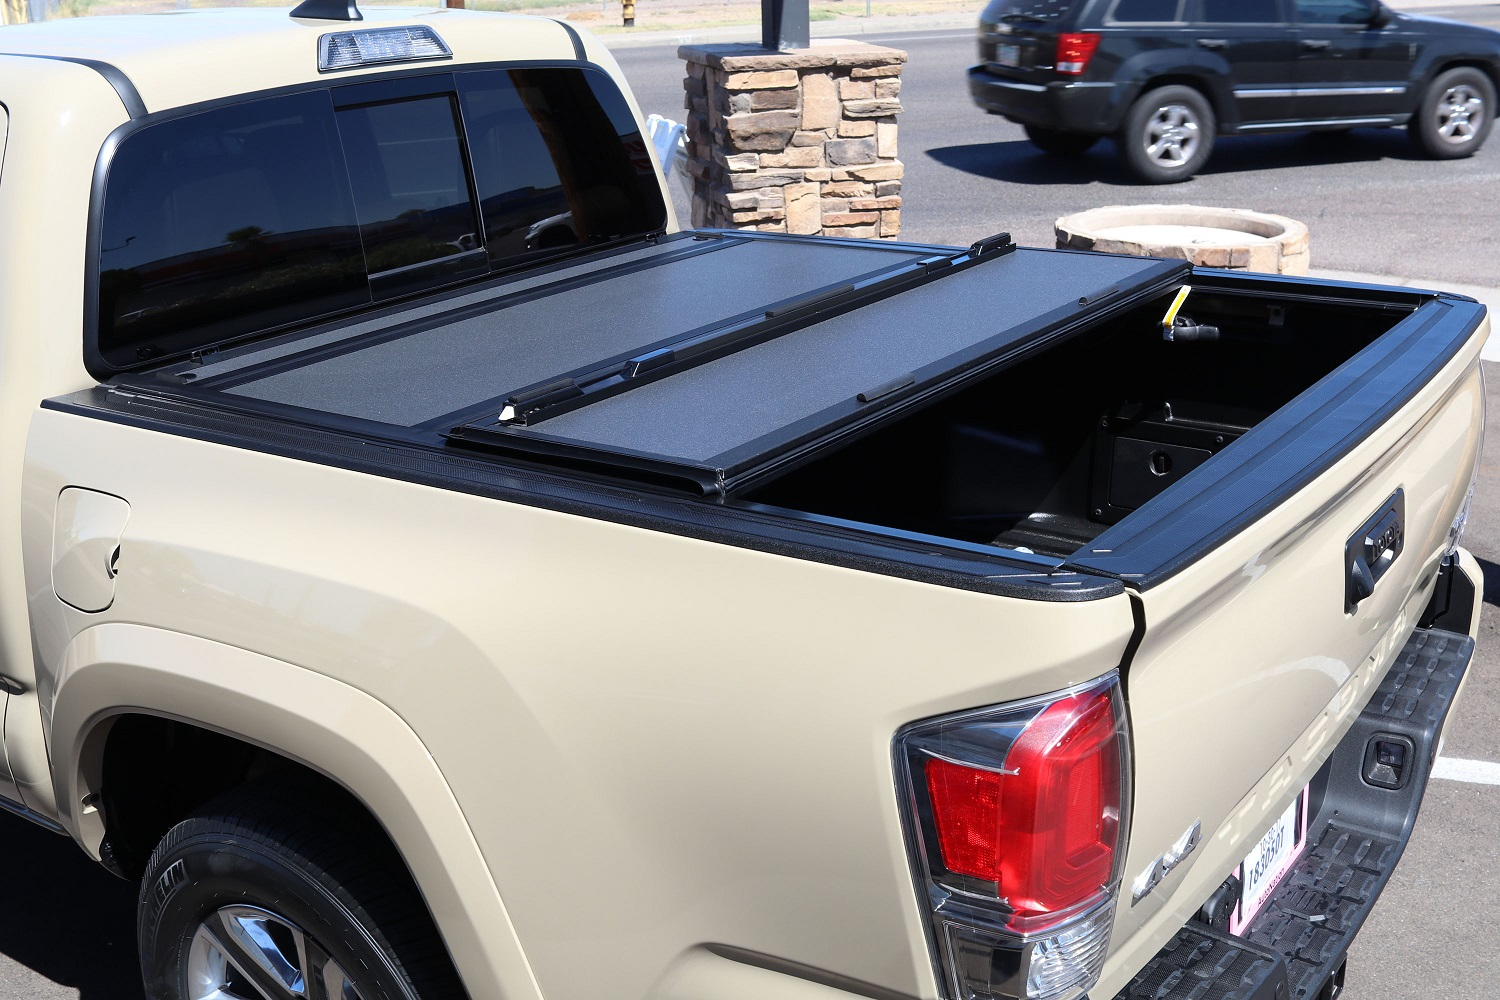 Toyota Tacoma BAKFlip MX4 hard truck bed cover